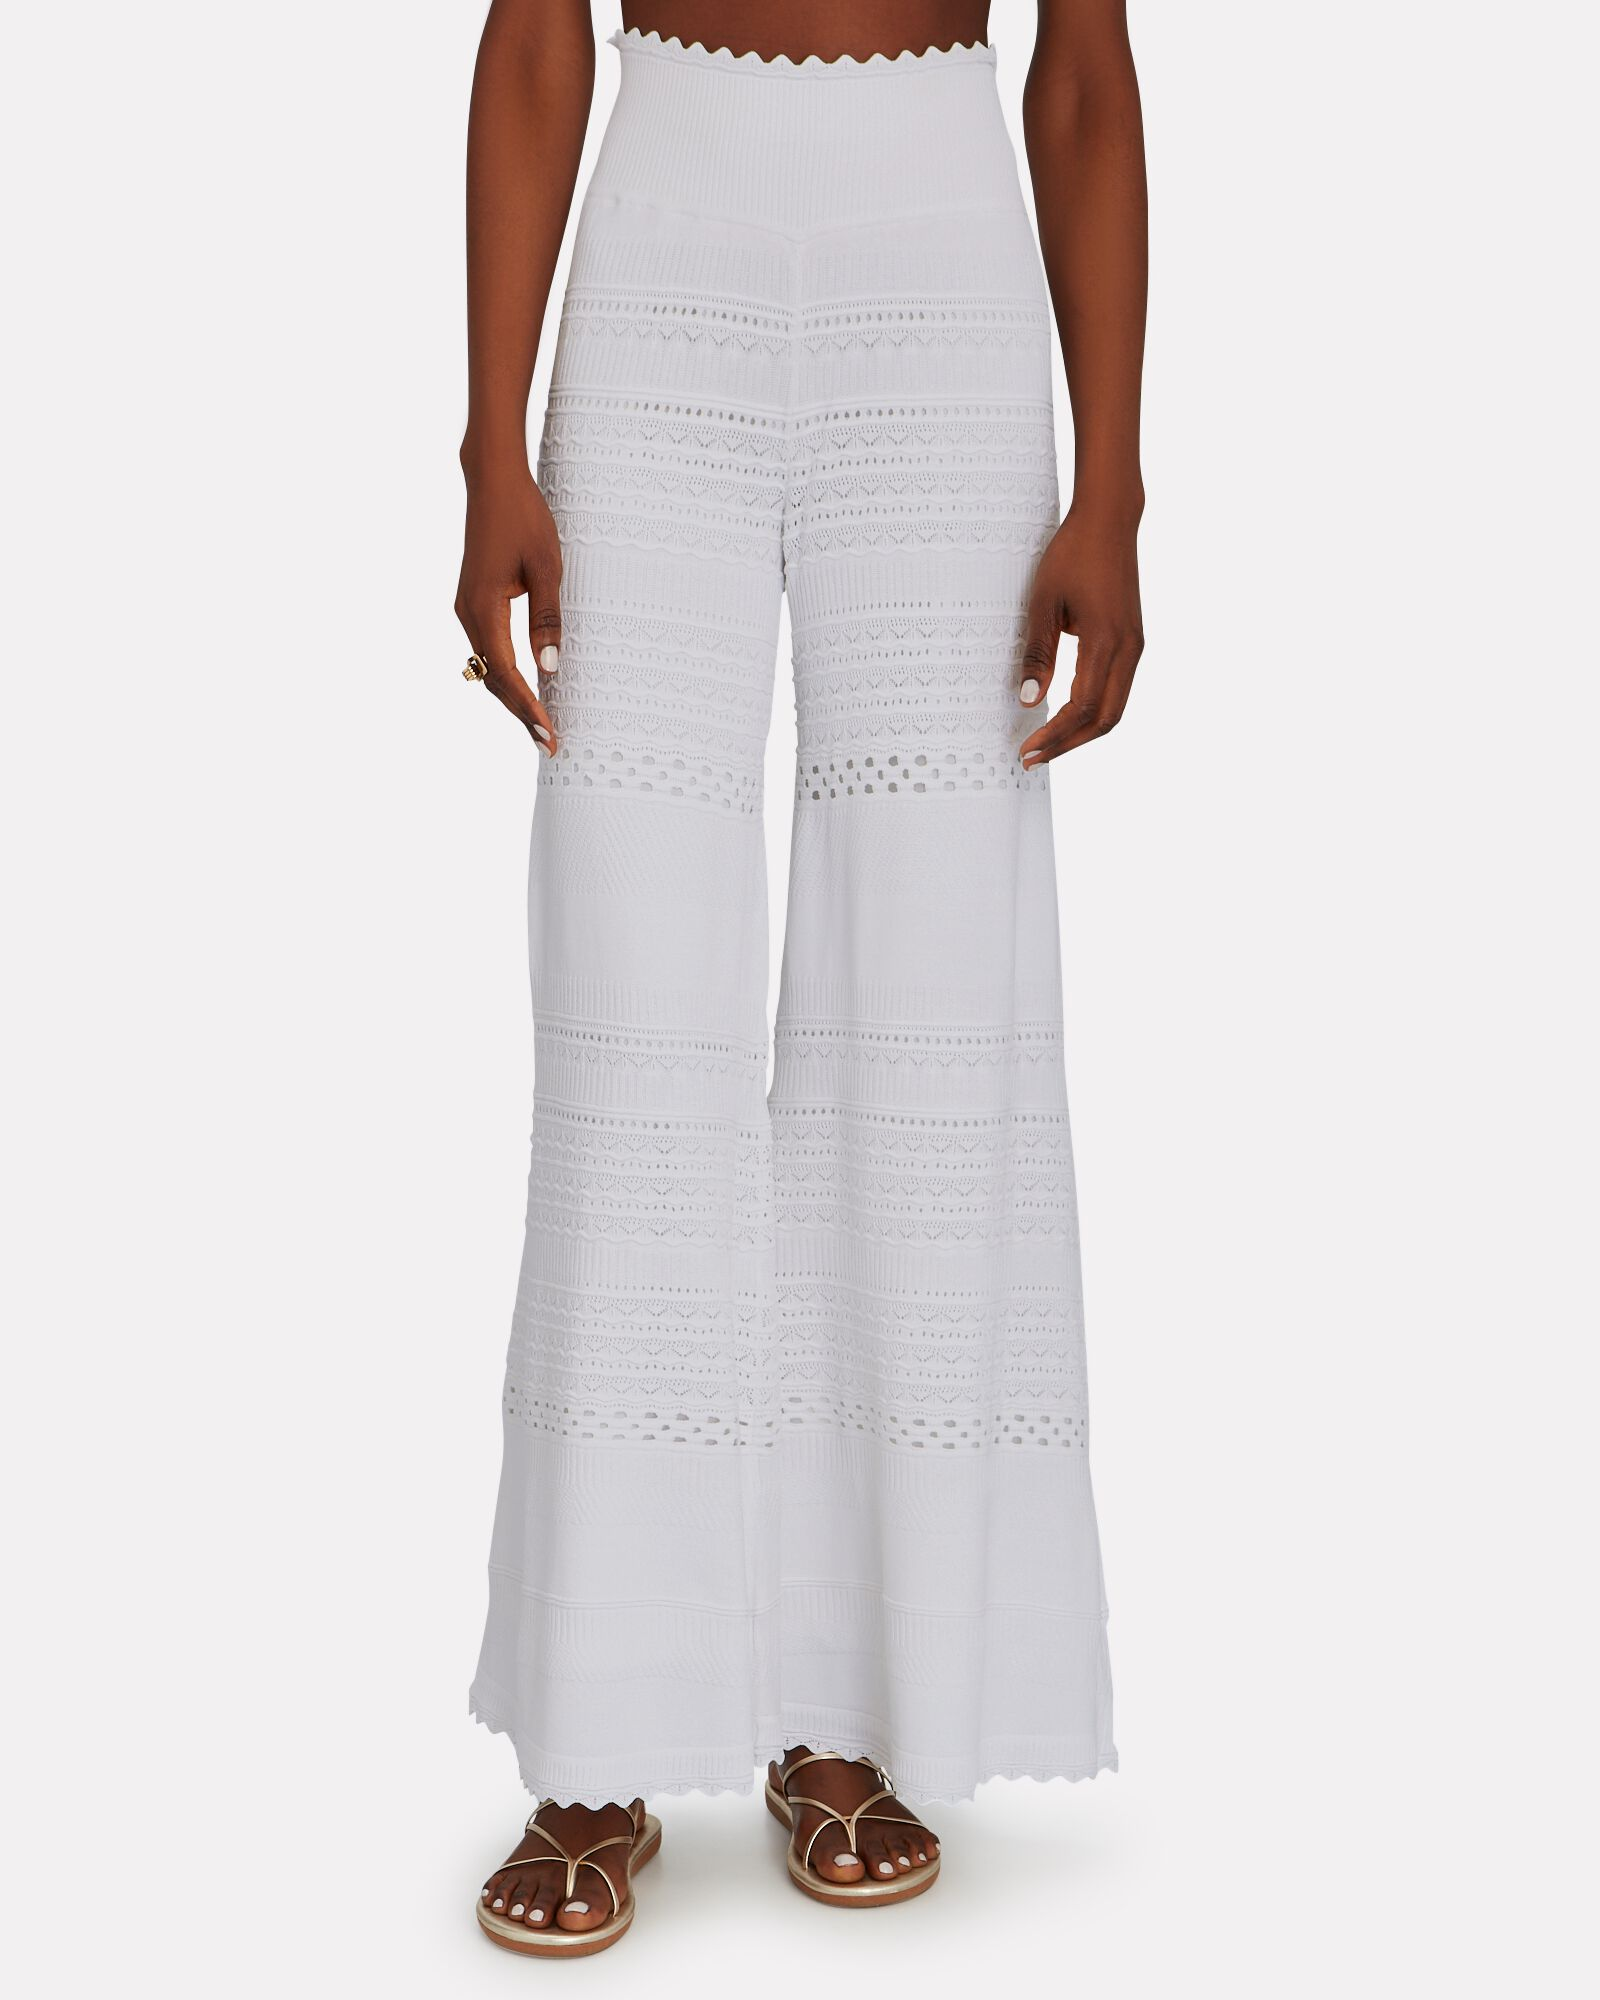 Haruko Pointelle Knit Pants, WHITE, hi-res